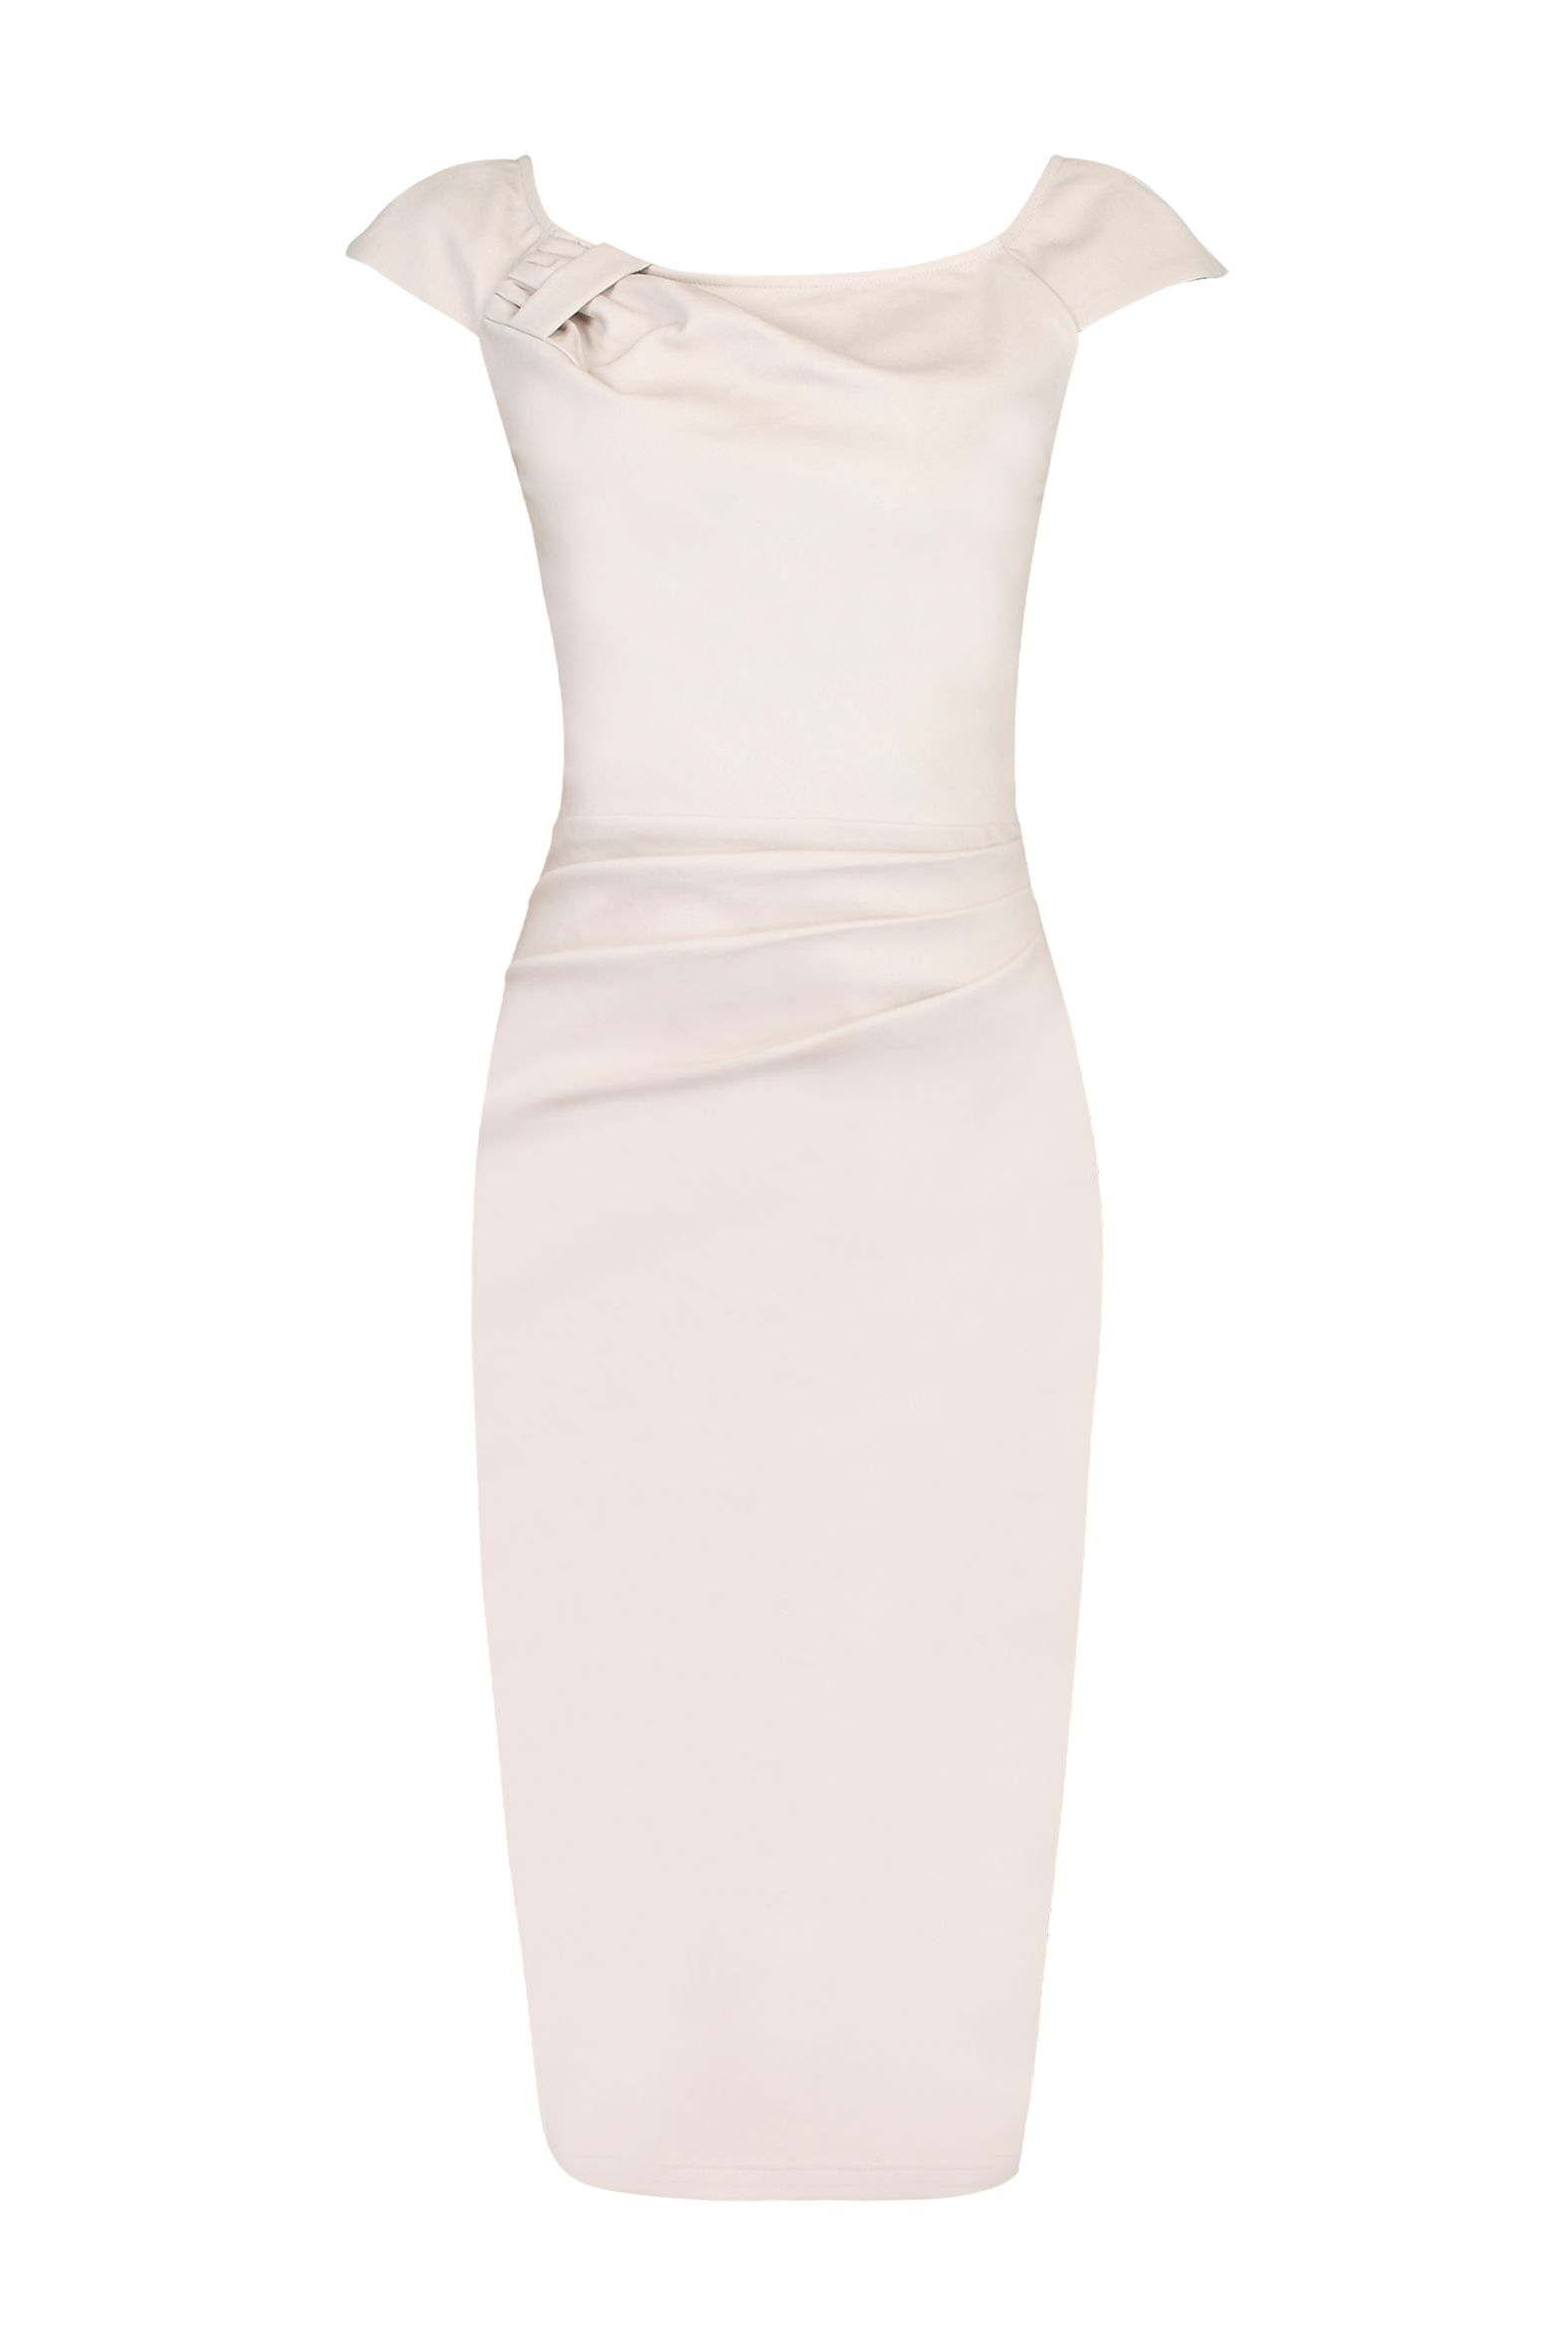 Jolie Moi Ruched 40s Wiggle Dress, White